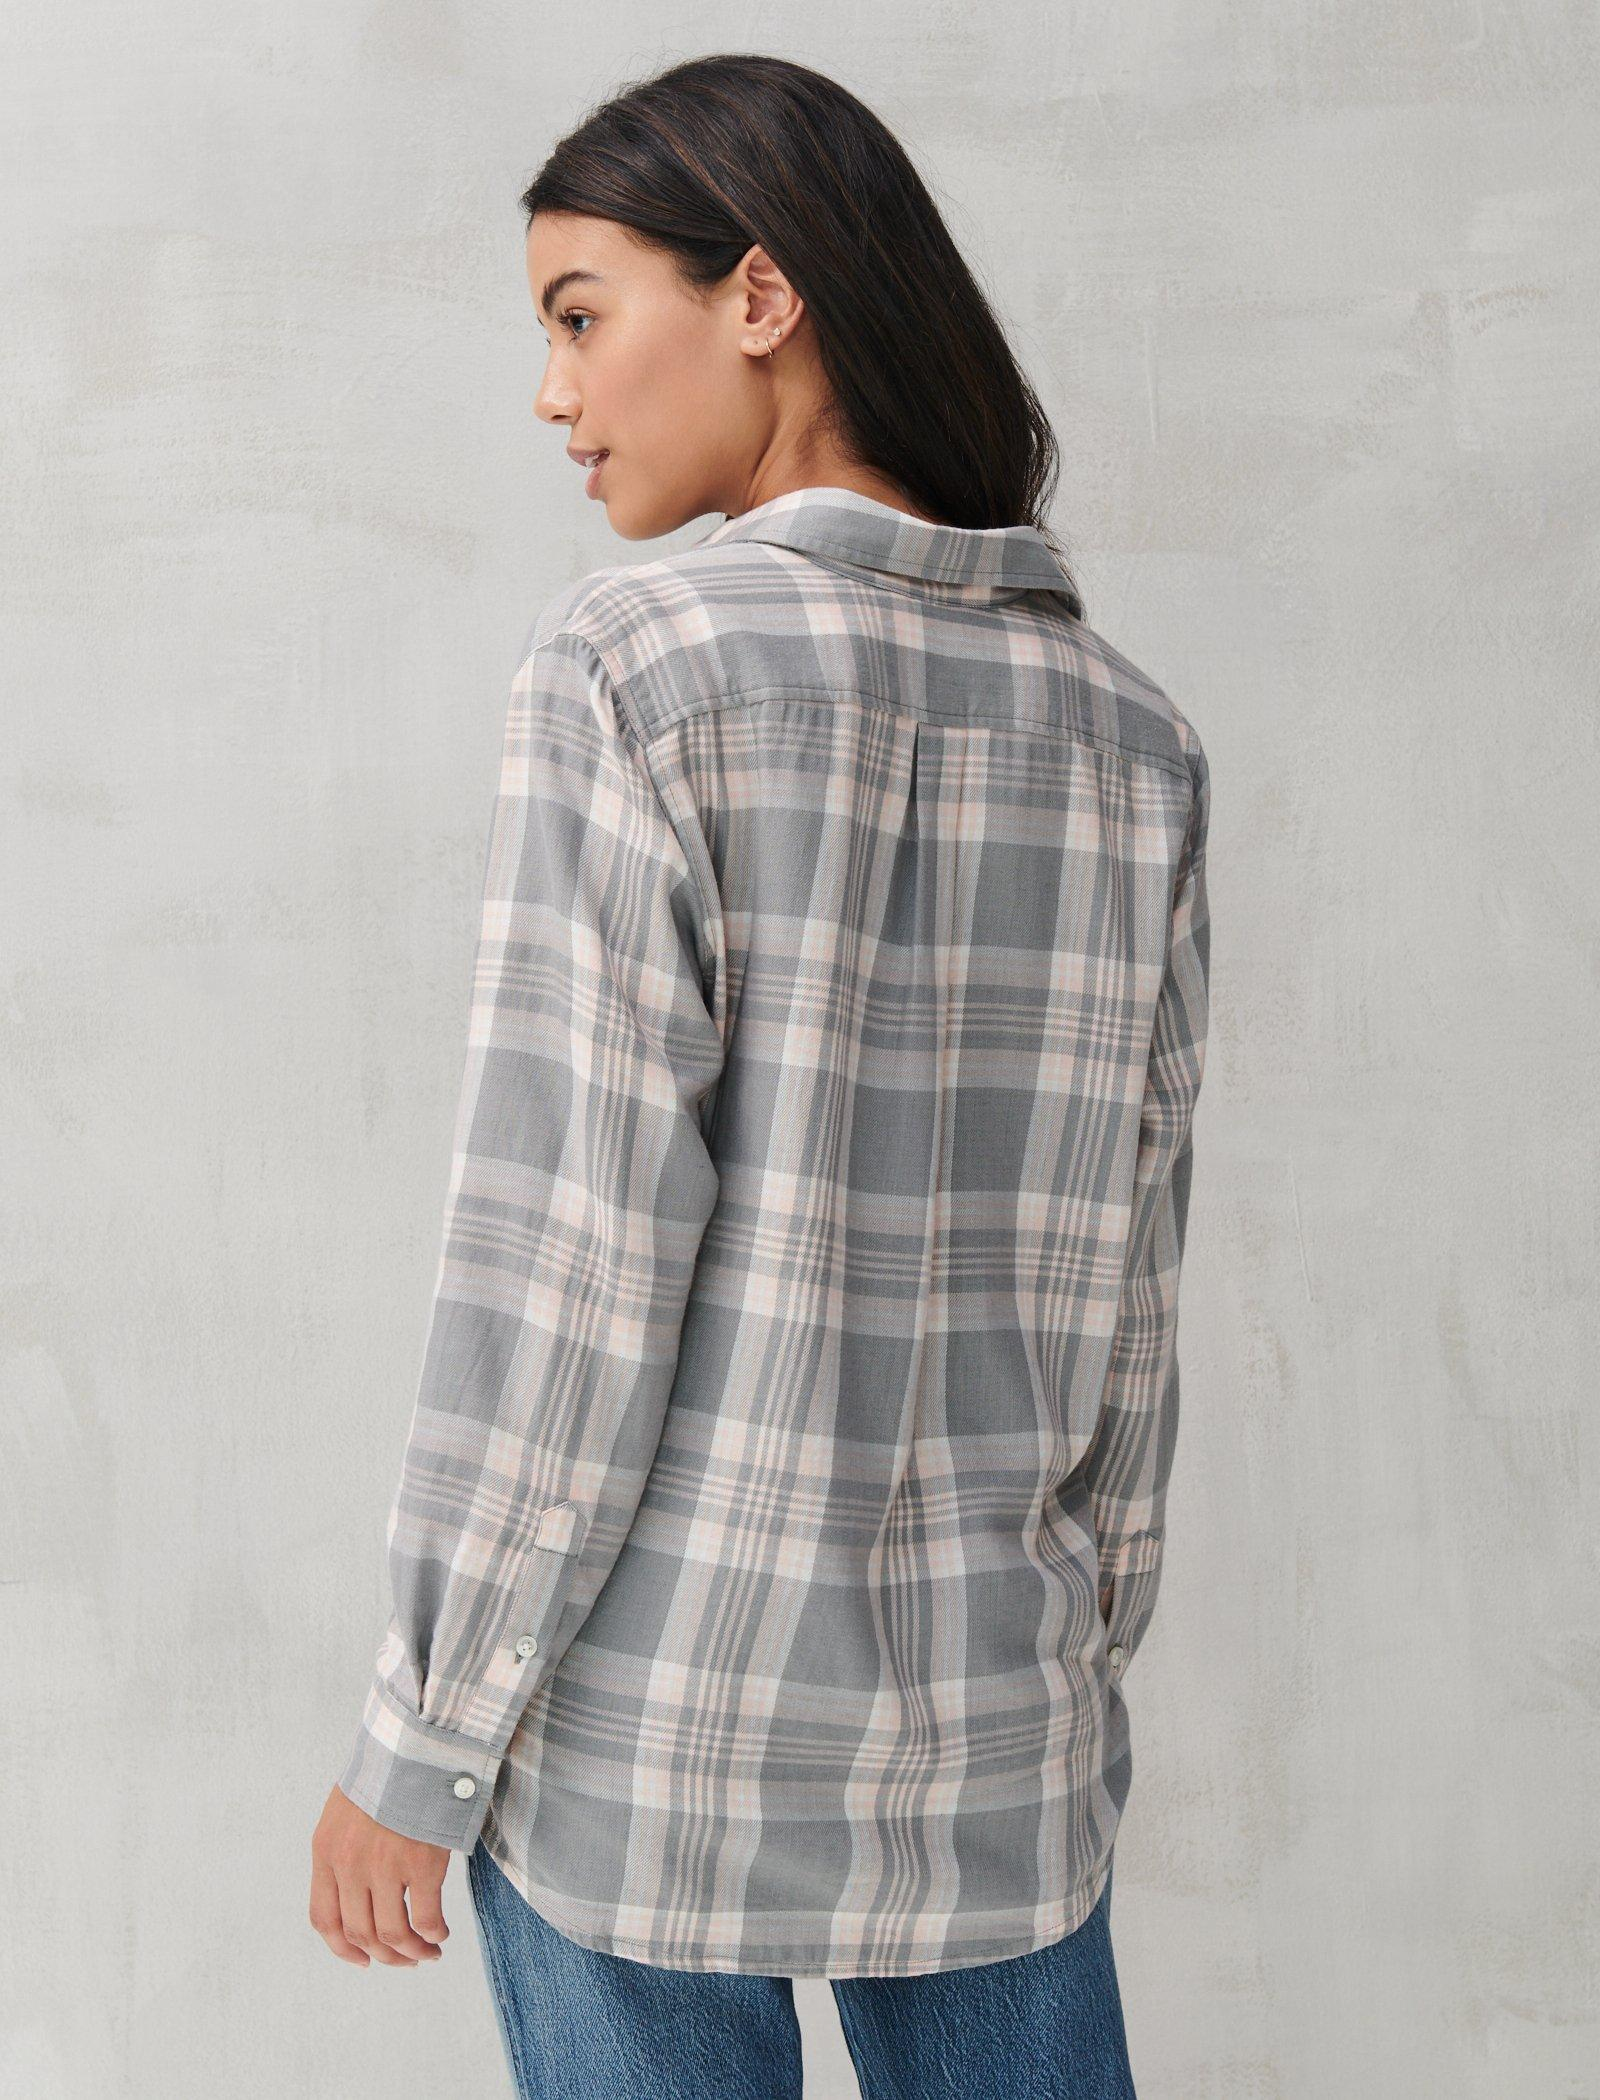 RELAXED FLANNEL SHIRT, image 4